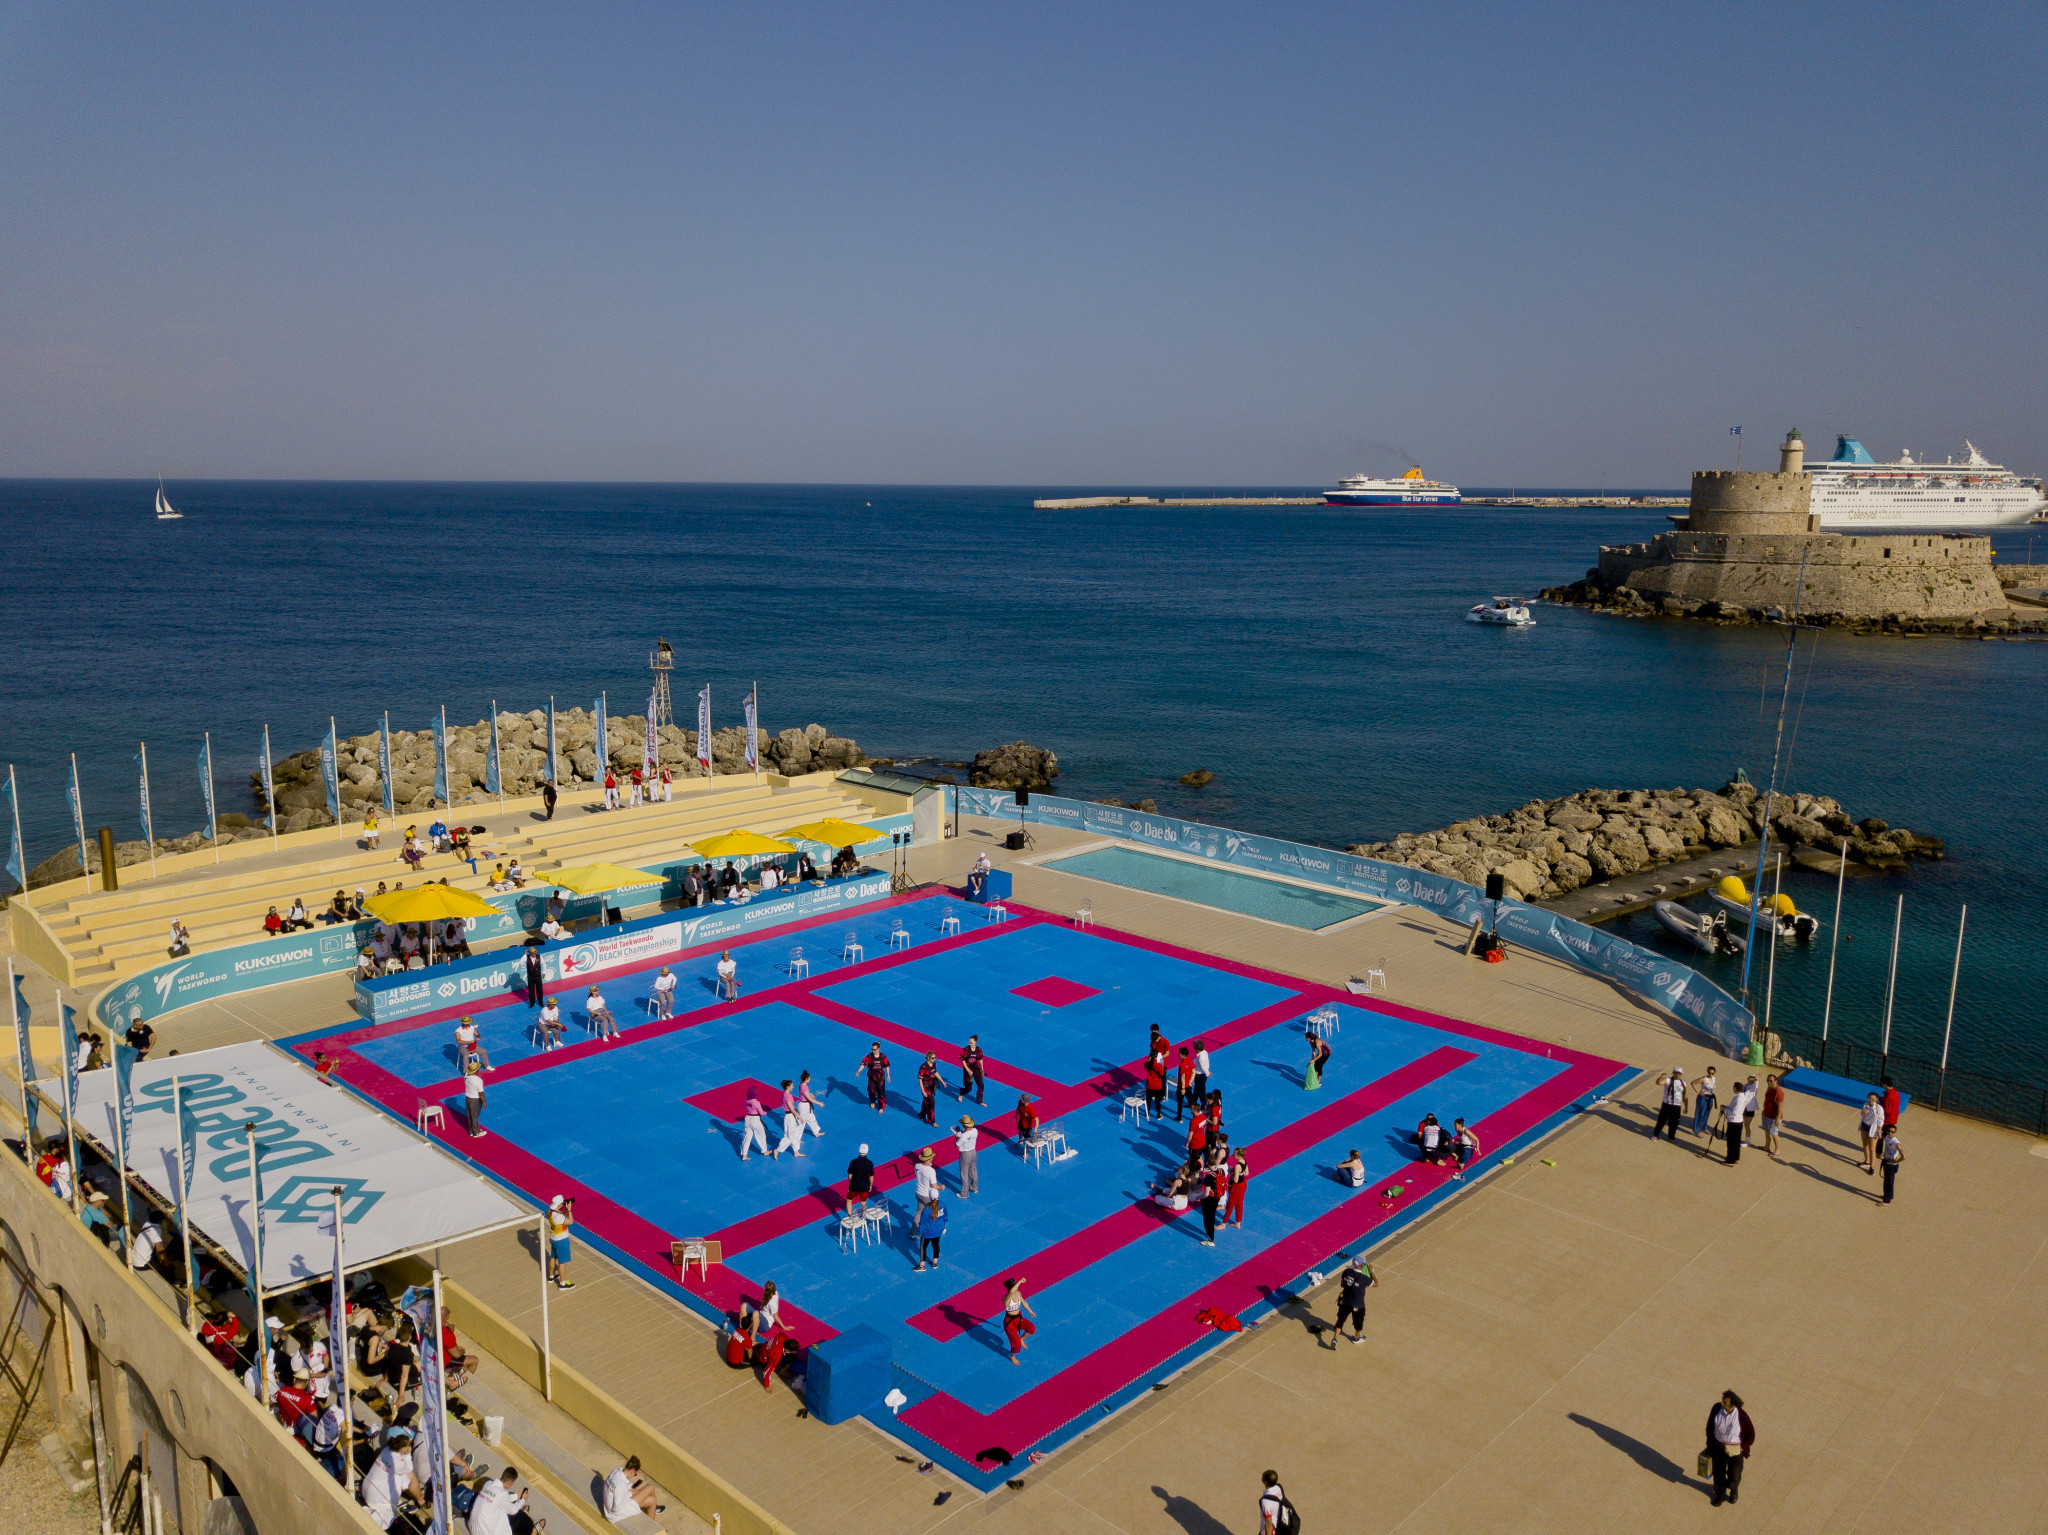 The competition is taking place on the picturesque Greek island of Rhodes ©World Taekwondo